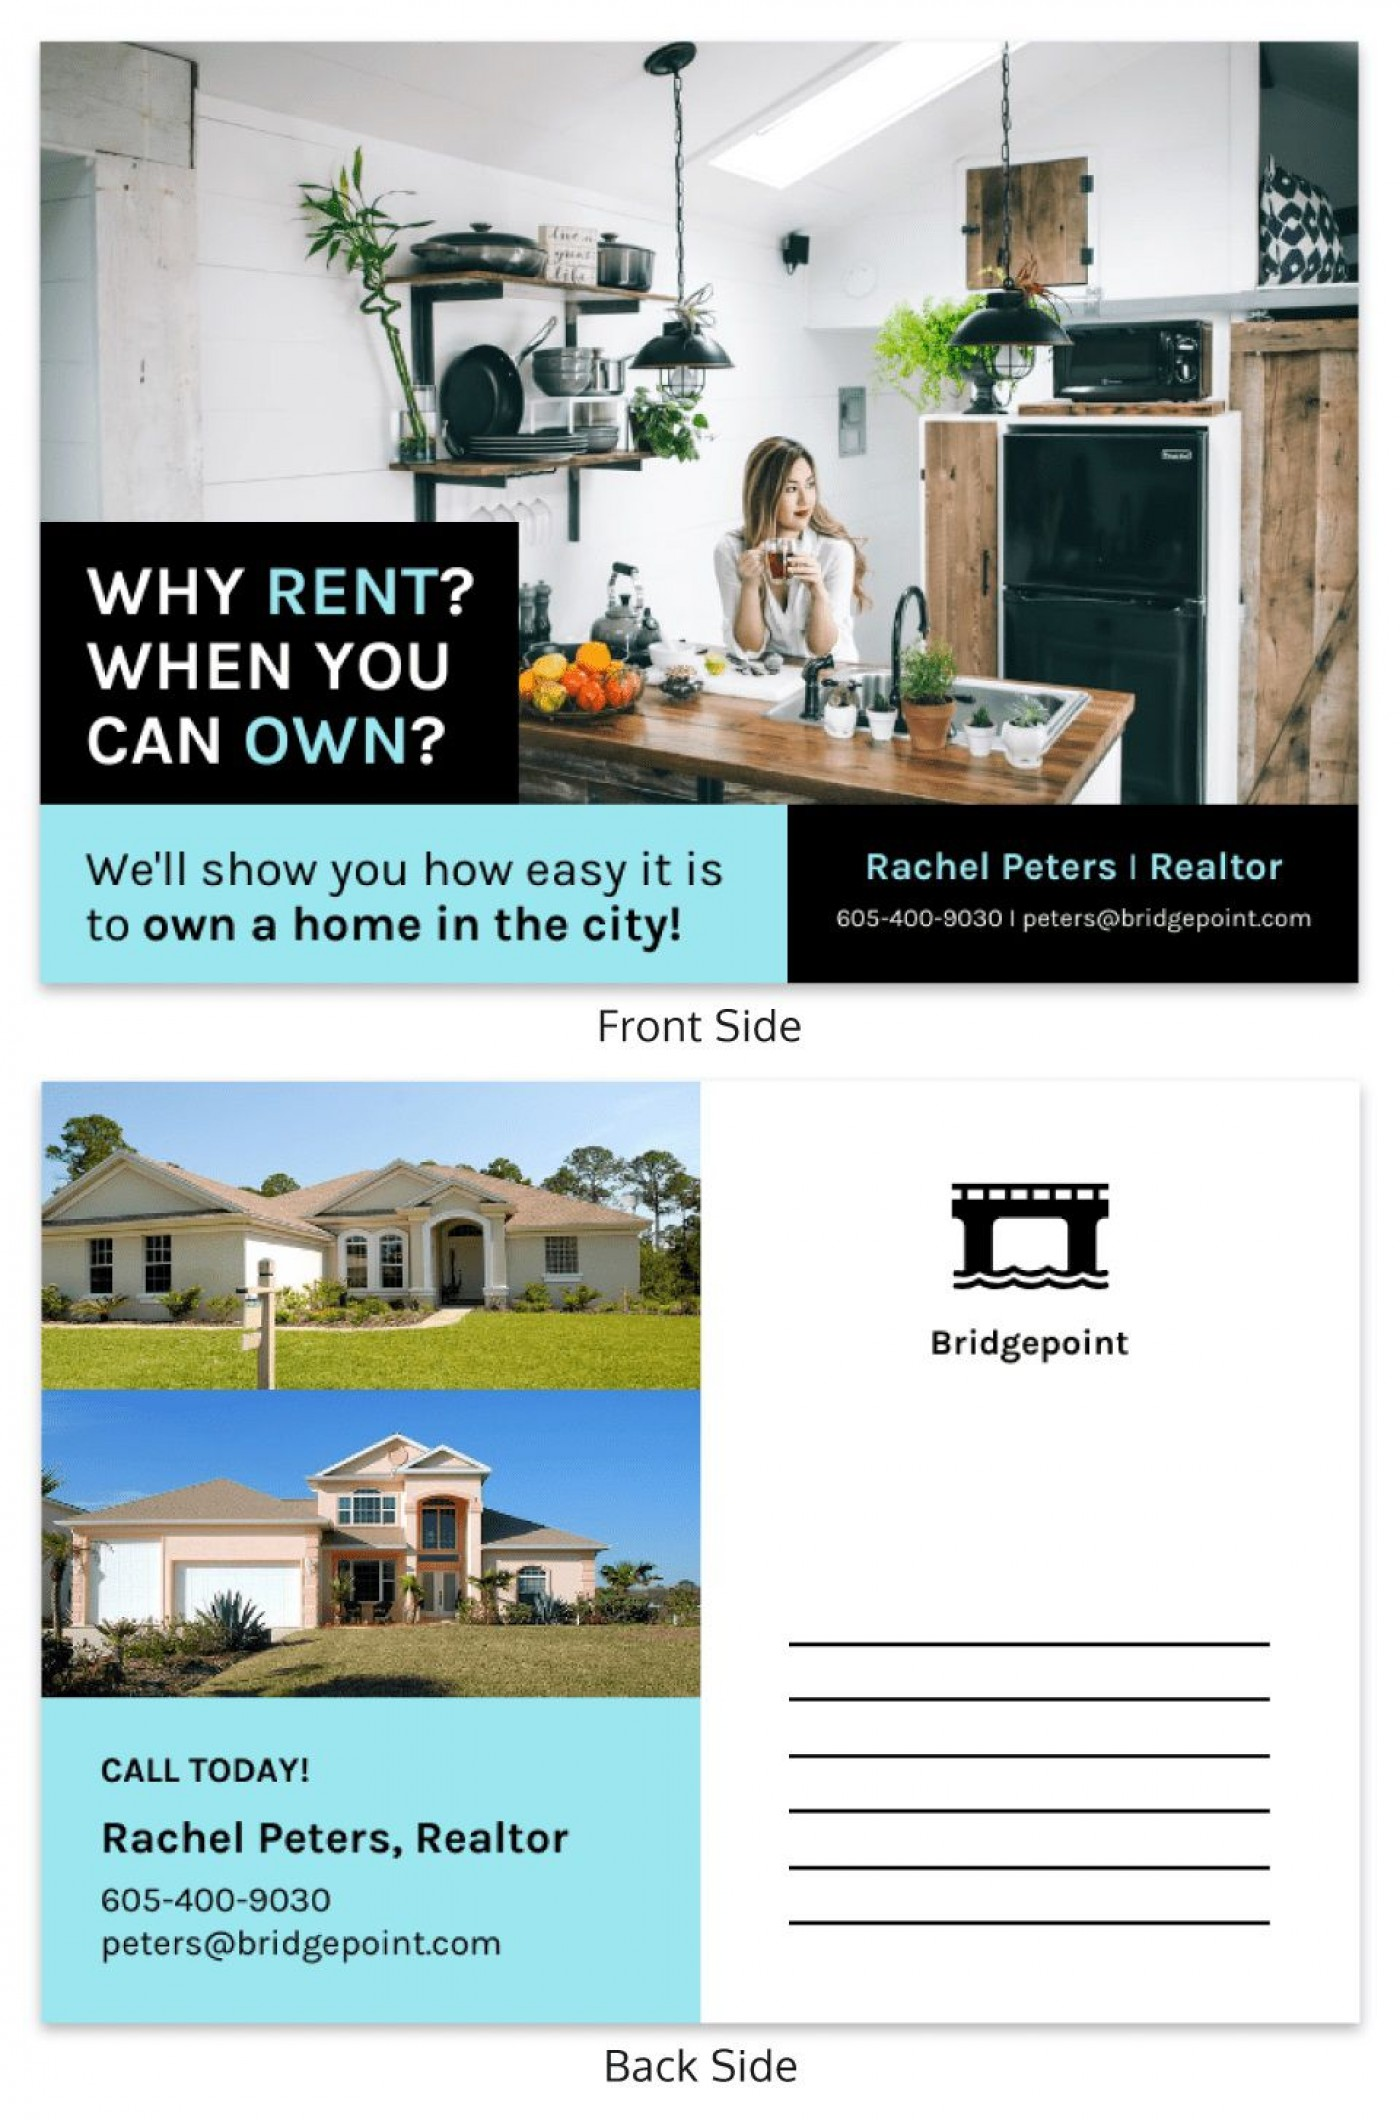 001 Fascinating Real Estate Postcard Template Design  Agent For Photoshop Investor1400